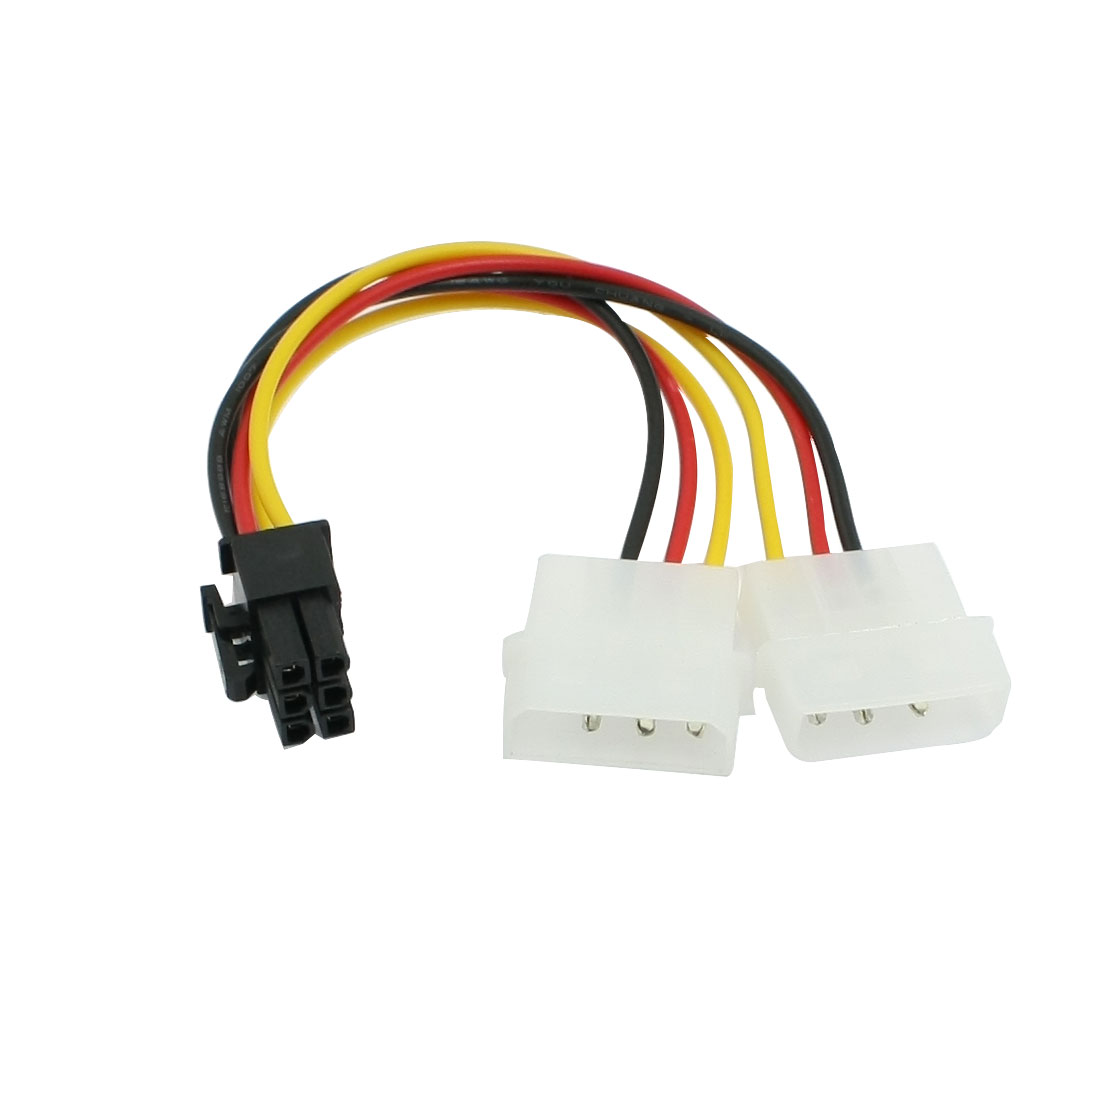 Dual IDE 3 Pins Male to ATX 5 Pin Female Splitter Power Cable Adapter